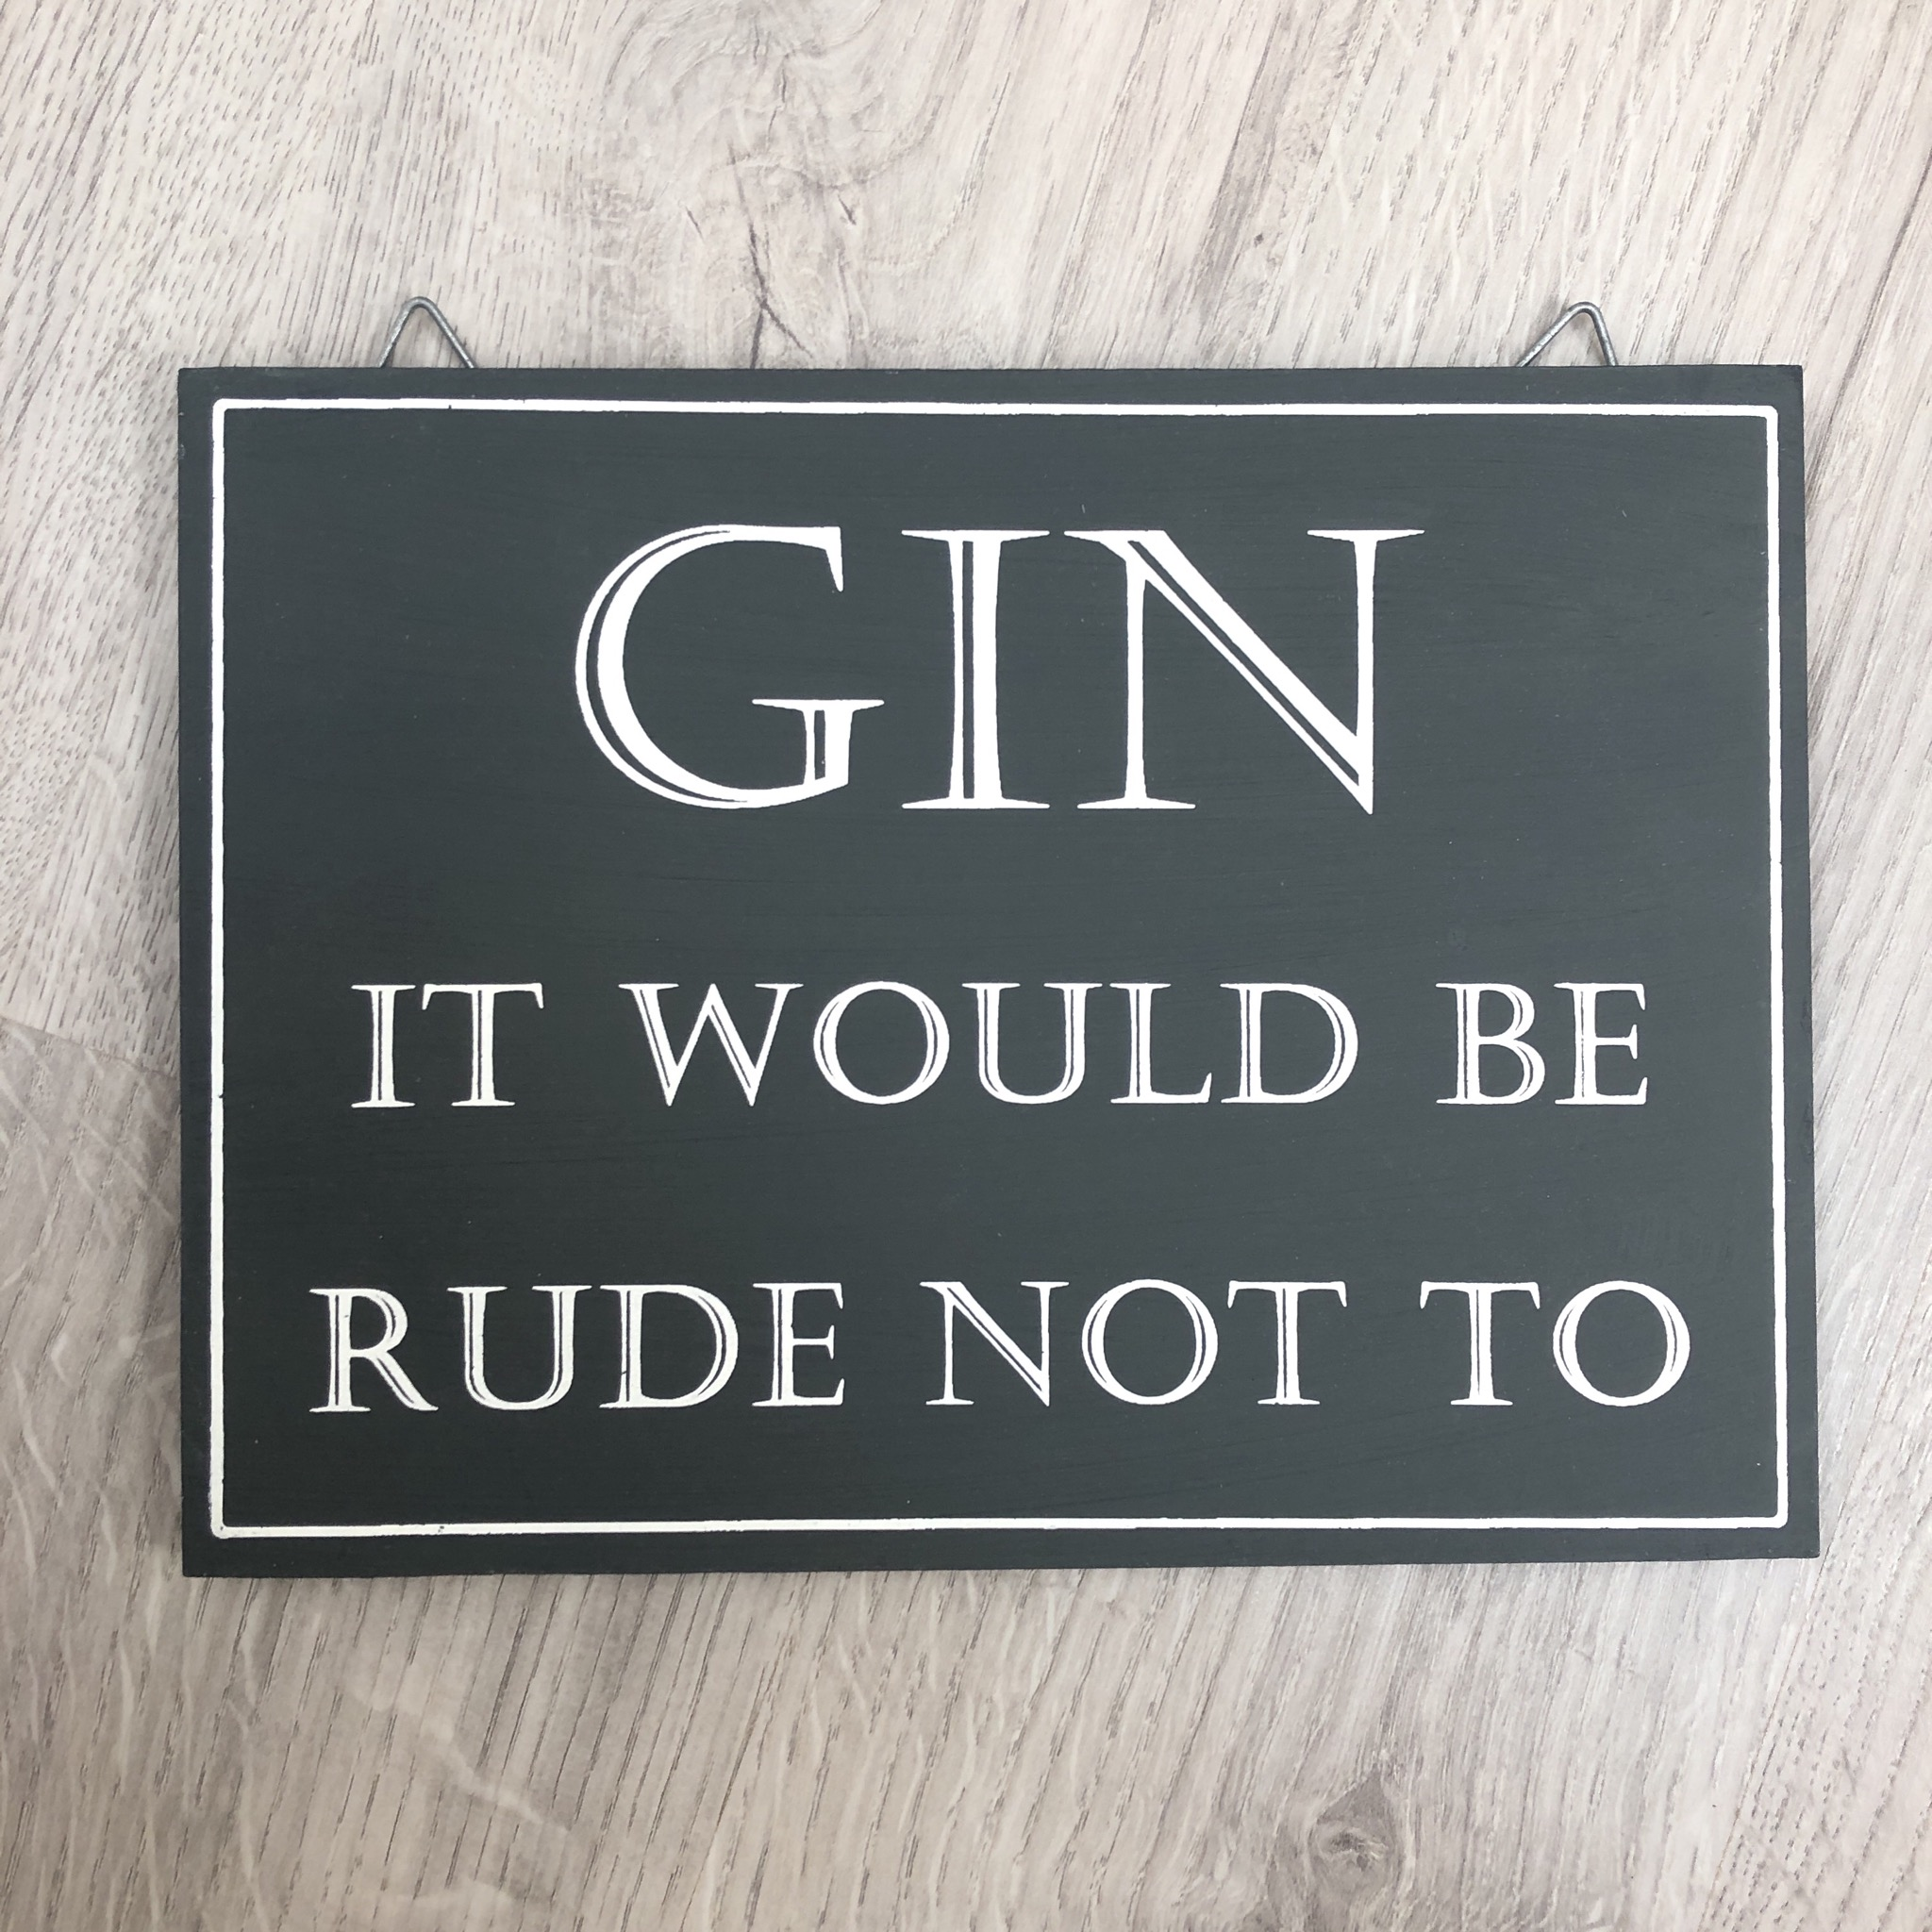 Gin it would be rude not to hanging sign